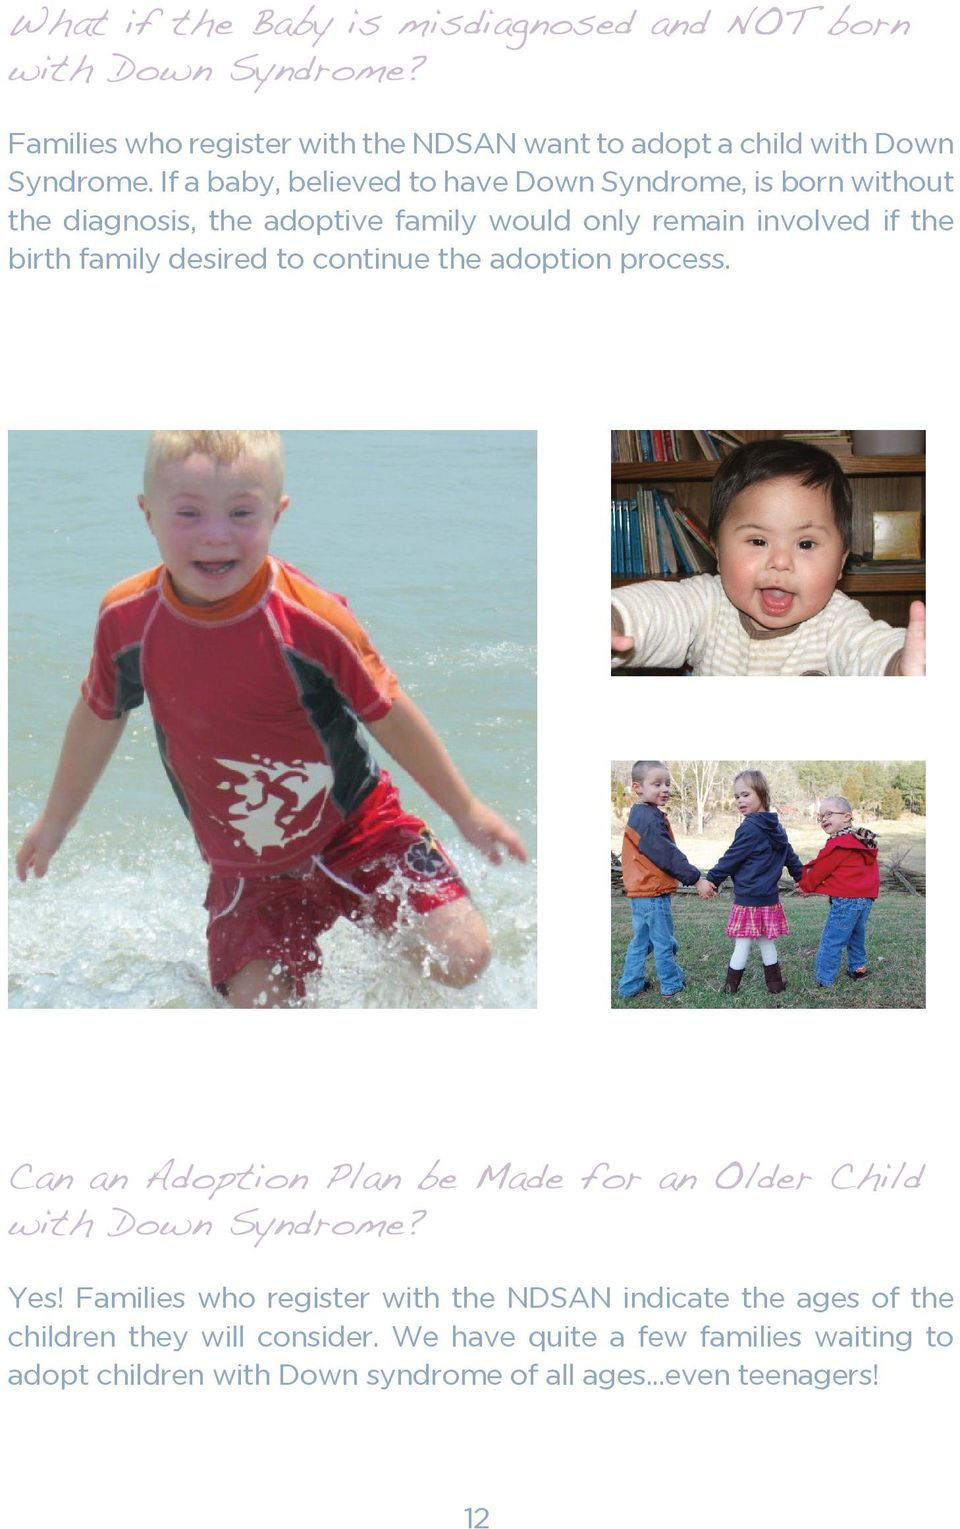 to continue the adoption process. Can an Adoption Plan be Made for an Older Child with Down Syndrome? Yes!